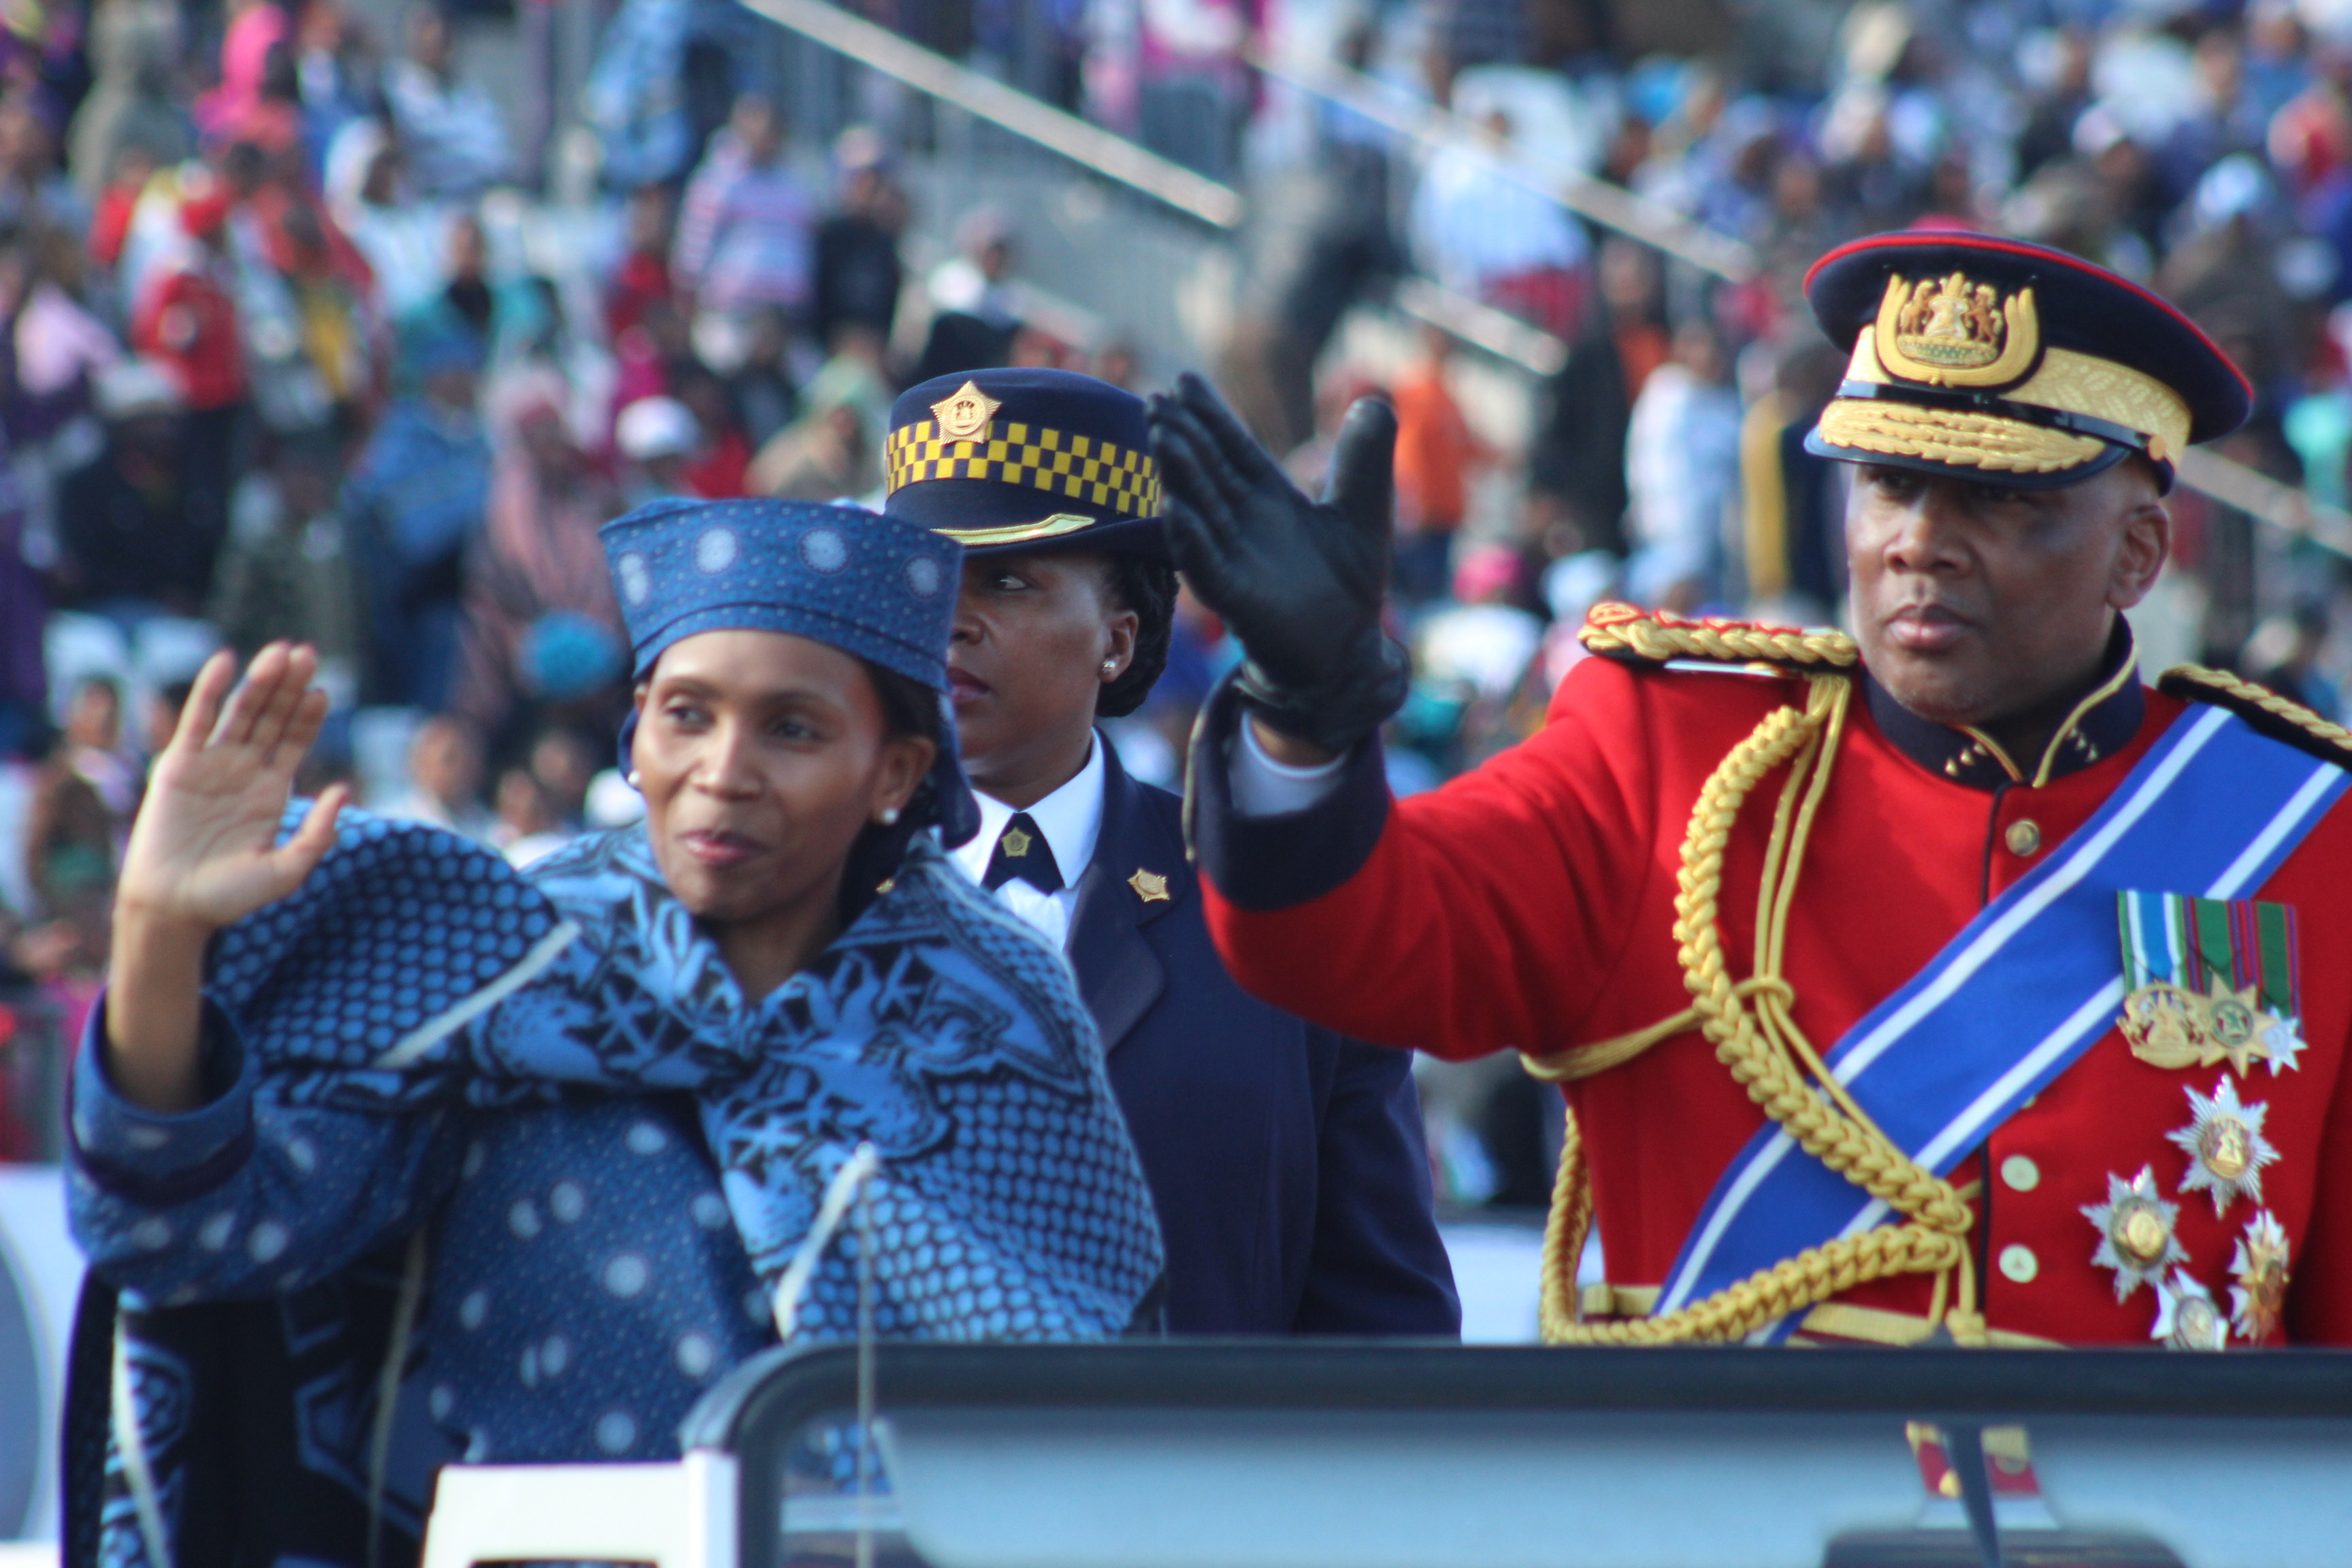 Morocco, Lesotho and Swaziland, African Nations, African Countries, African Monarchy, African Monarch, KOLUMN Magazine, KOLUMN, KINDR'D Magazine, KINDR'D, Willoughby Avenue, Wriit,